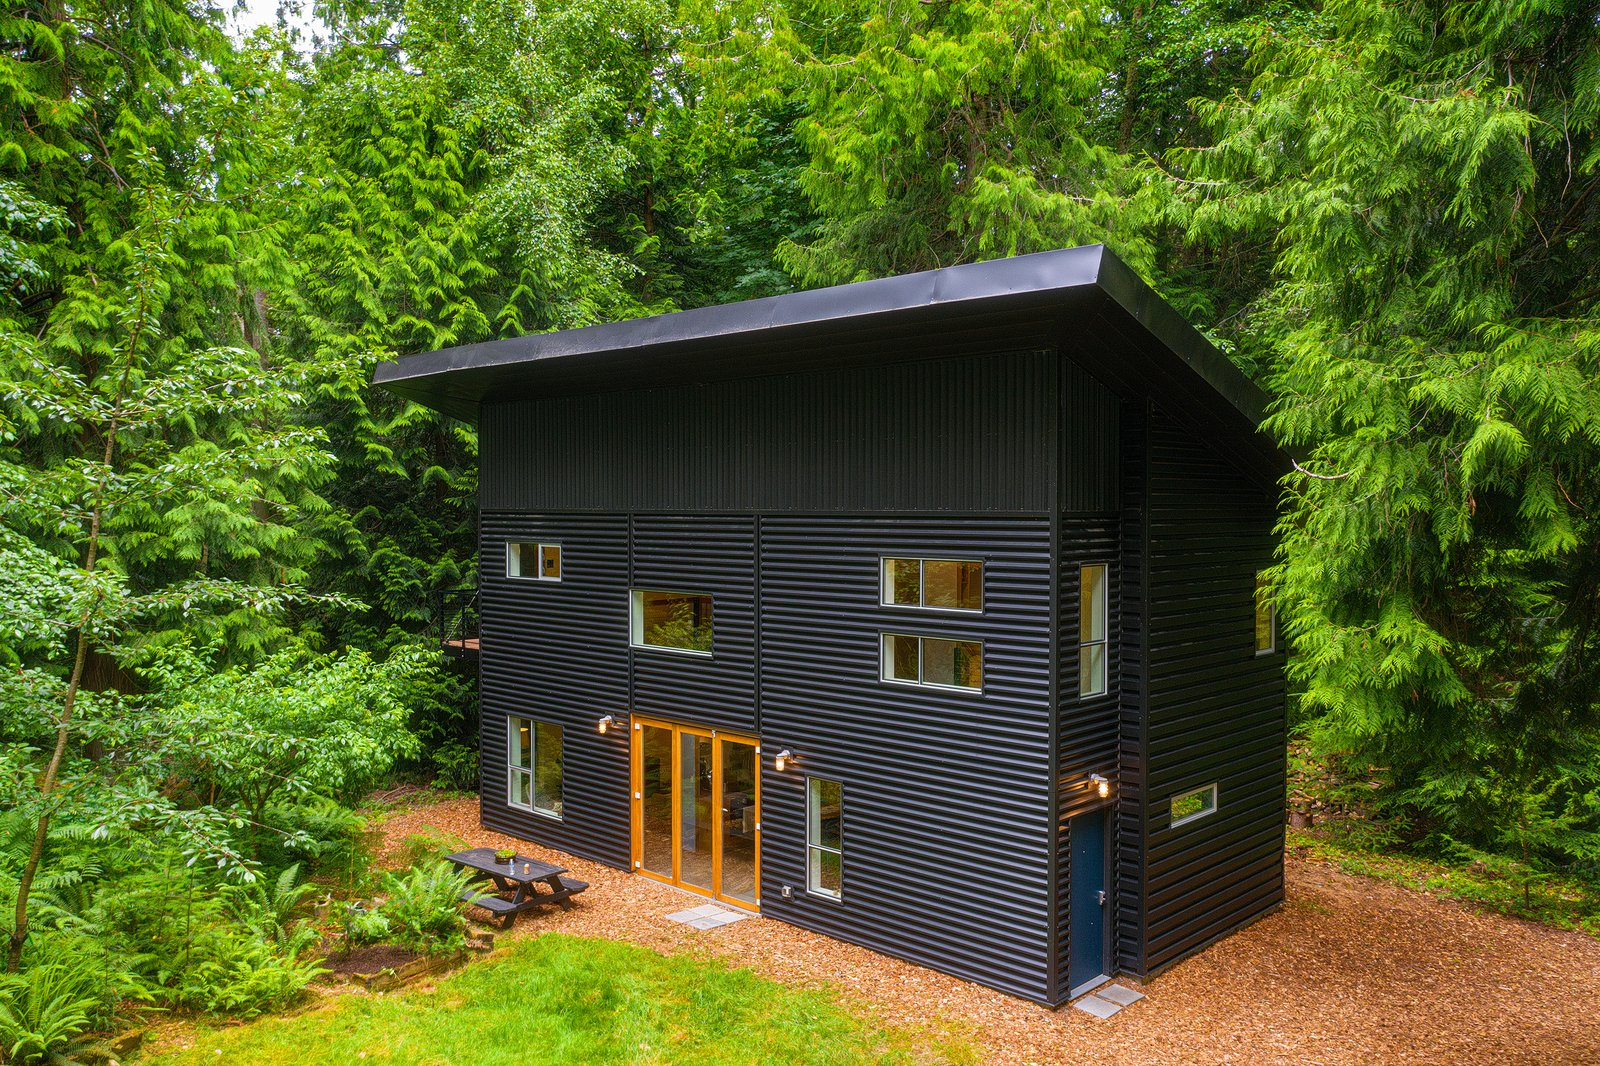 Pacific Northwest Homes: Design and ideas for modern living